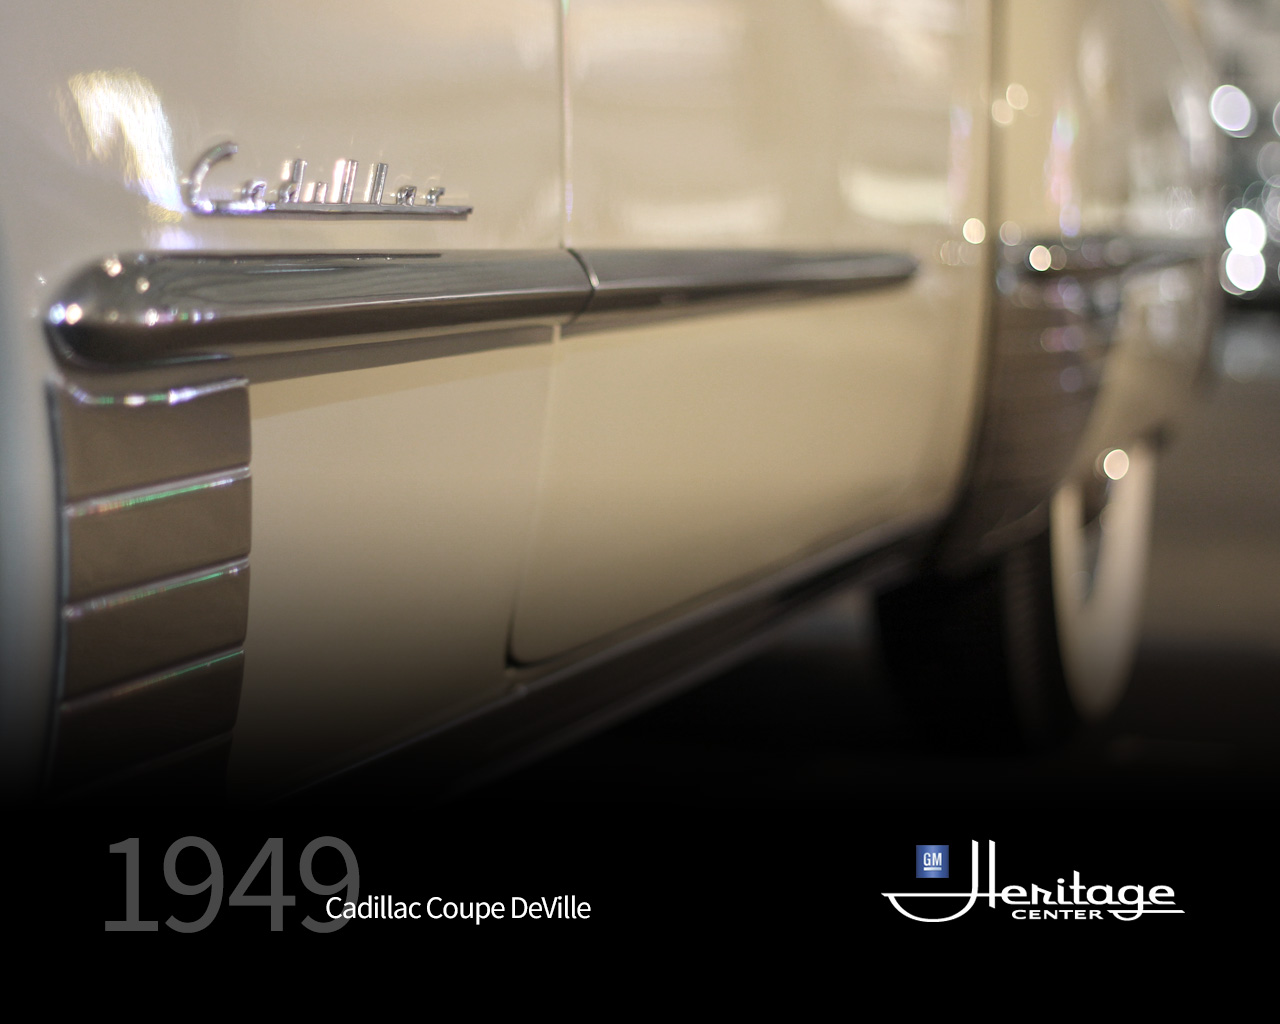 Gm Heritage Center Collection 1949 Cadillac Coupe Deville V8 Engine Download Wallpaper